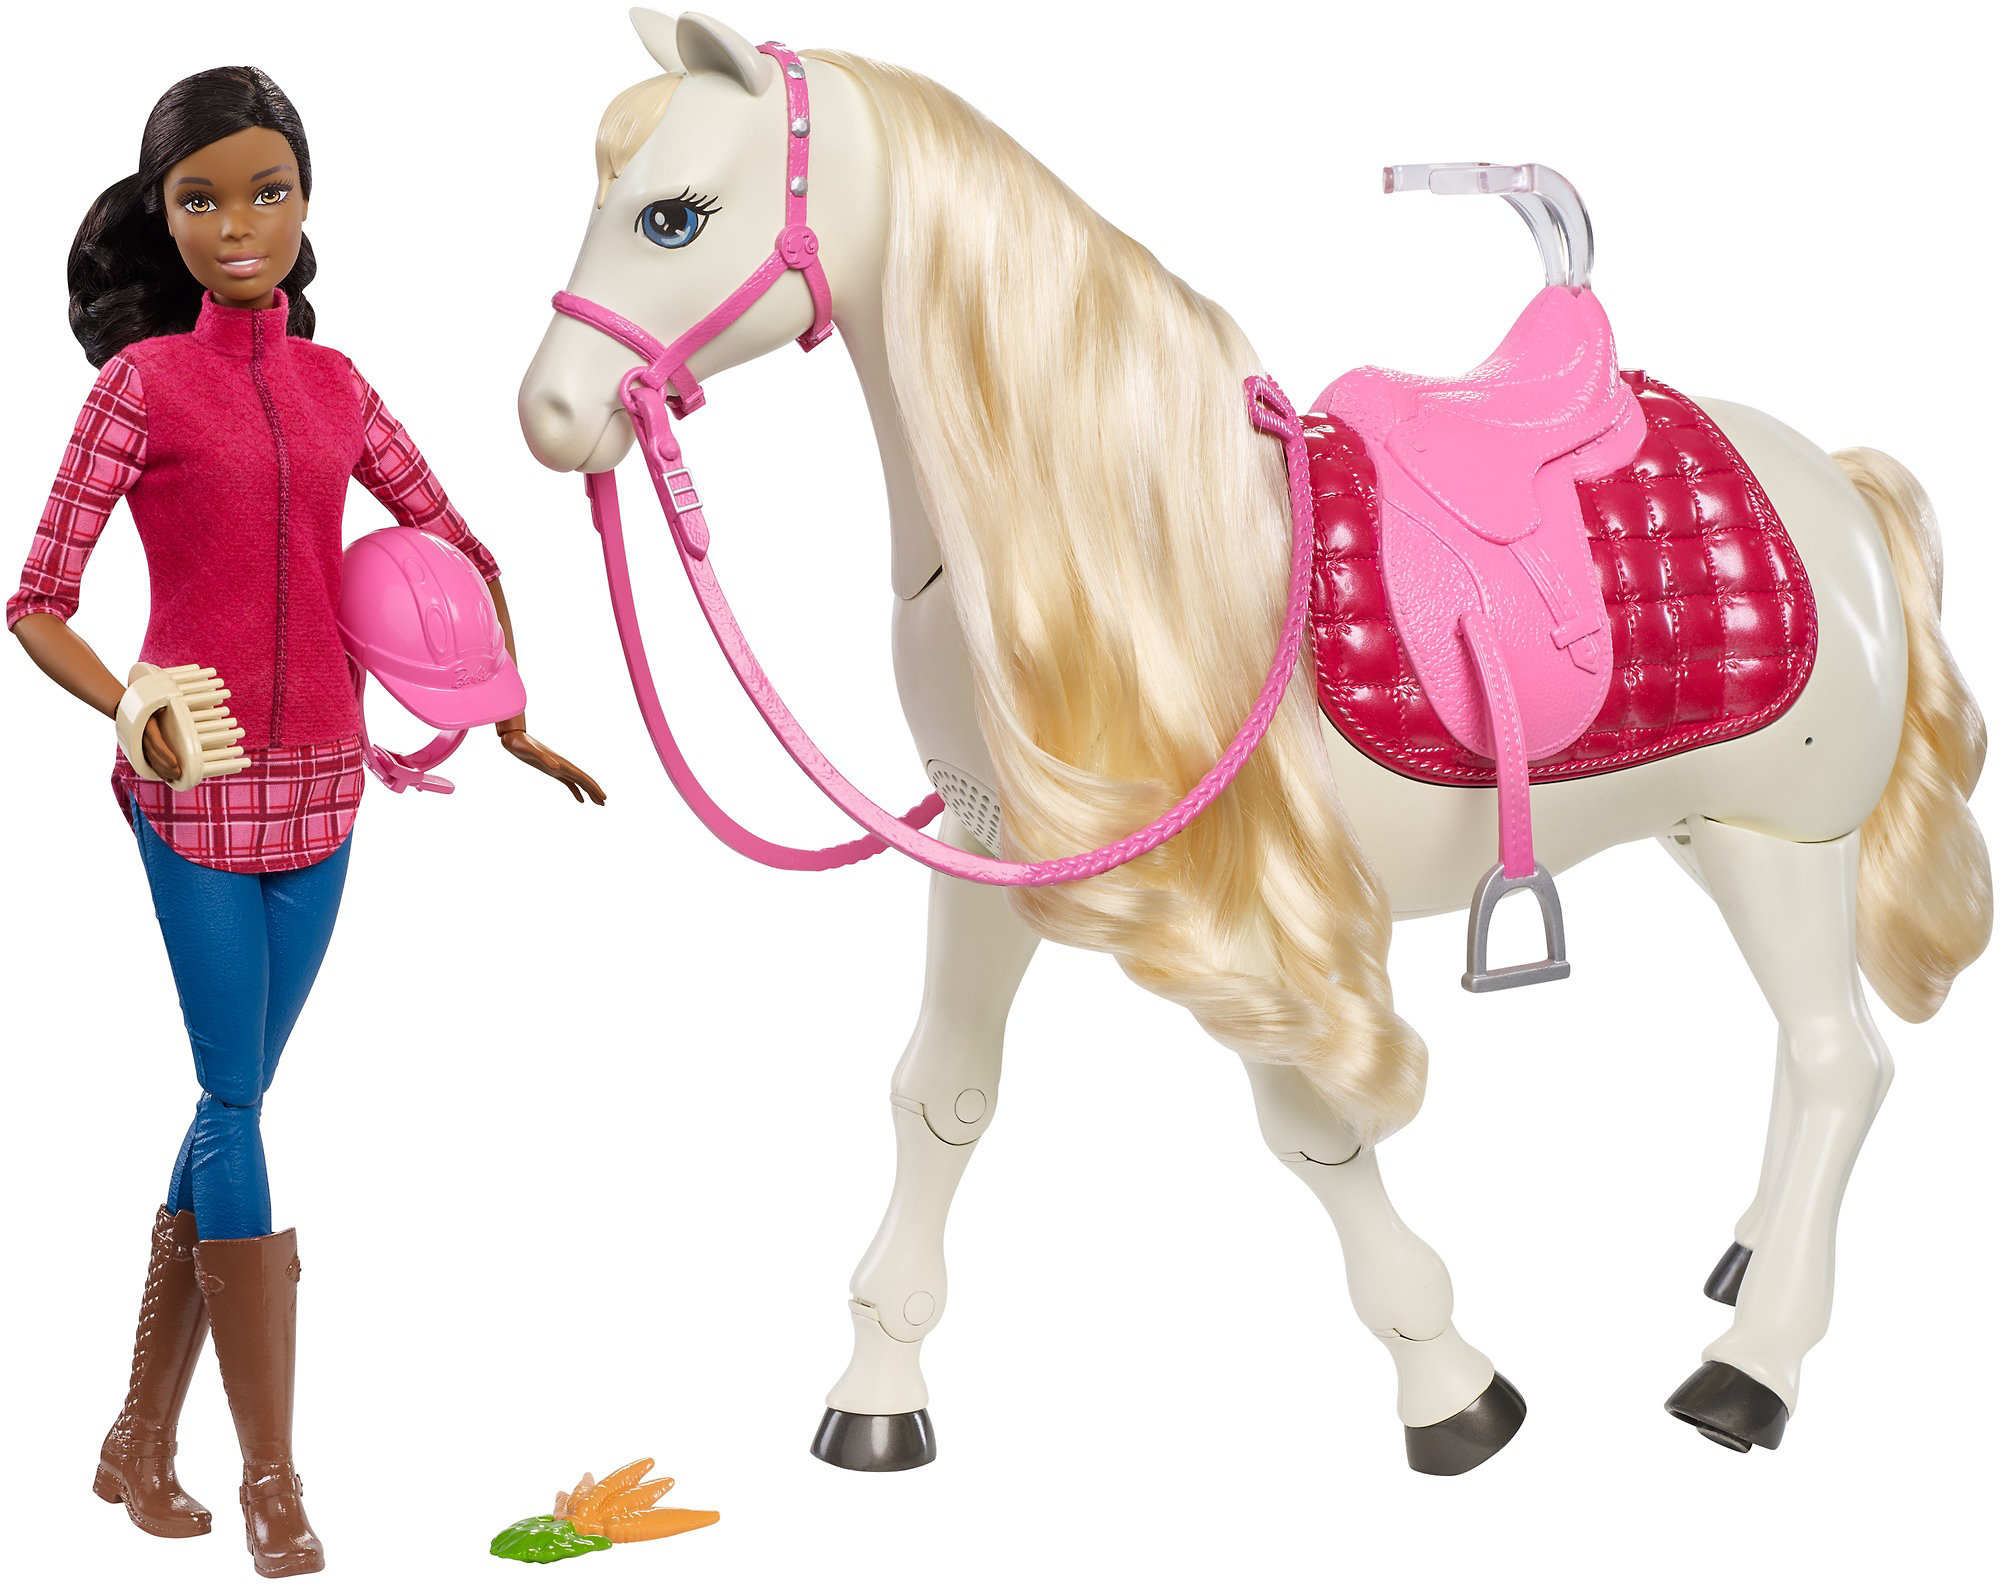 Barbie DreamHorse and Nikki Doll by Mattel